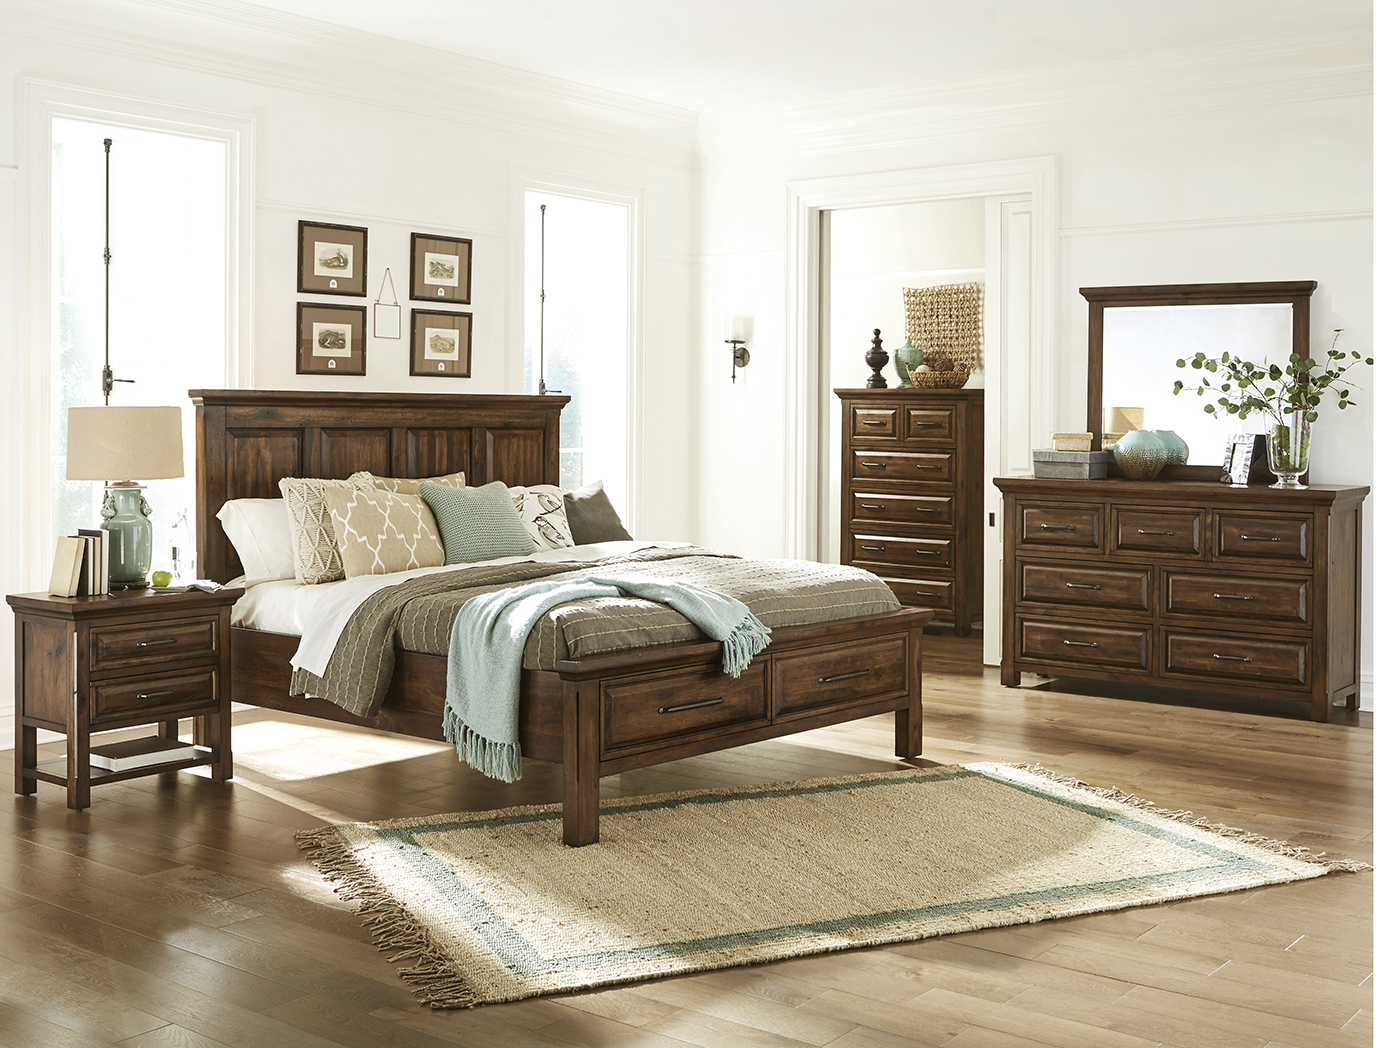 Hillcrest King Panel Storage Bed